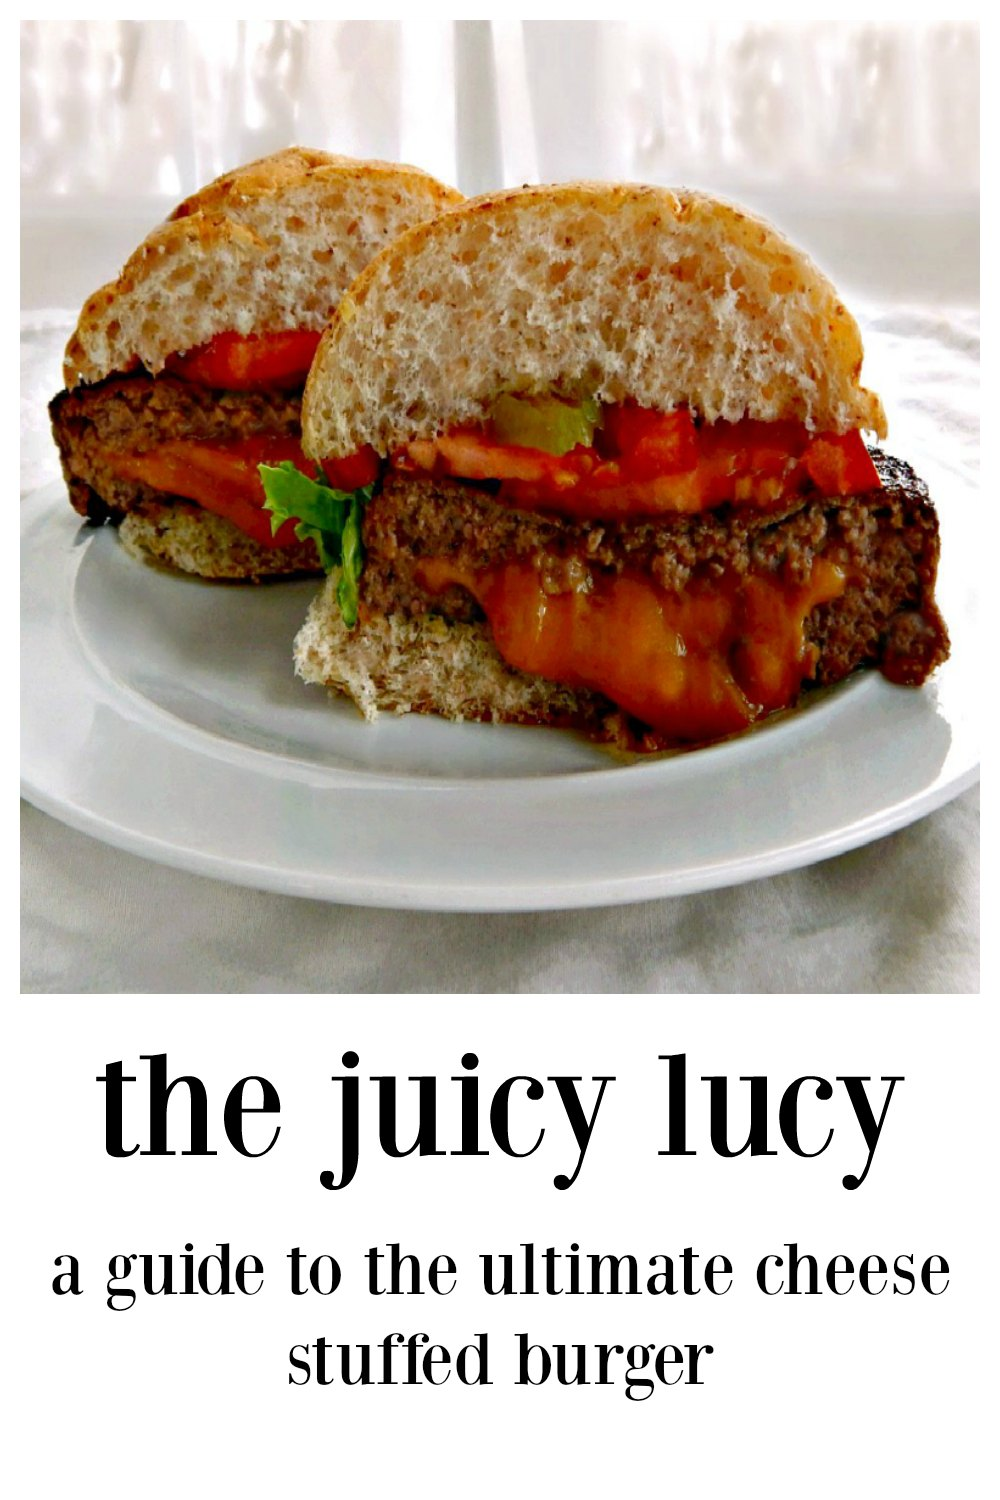 The Juicy Lucy - Ultimate Cheese Stuffed Burger with all the tips and hints you need so you don't have any leakers! The Ultimate Guide from a Minnesotan. #JuicyLucy #JucyLucy #JuicyLucyBurger #UltimateJuicyLucy